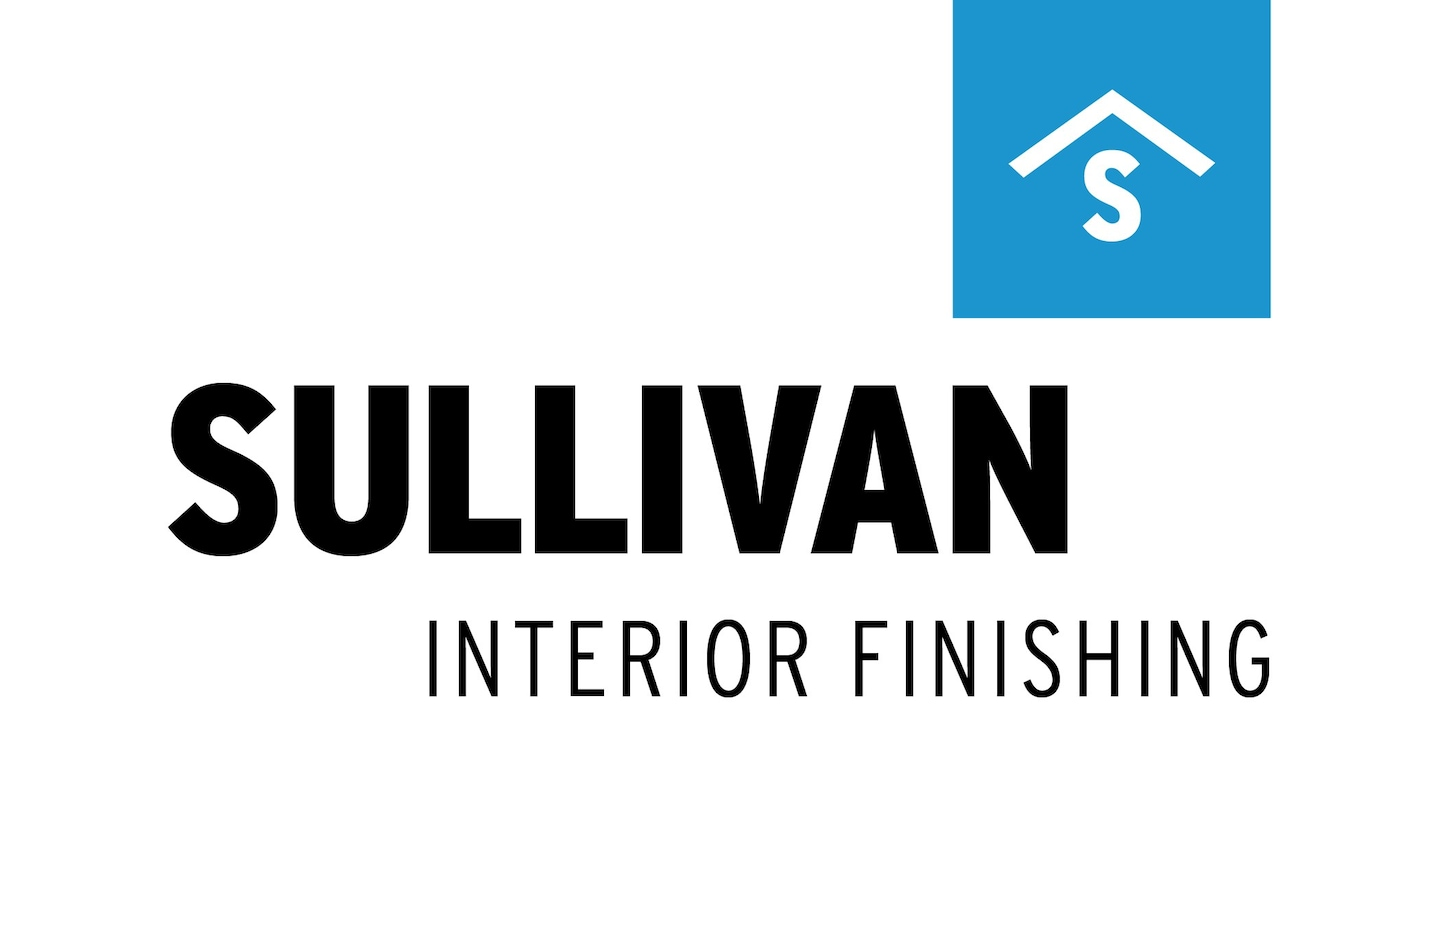 Sullivan Interior Finishing